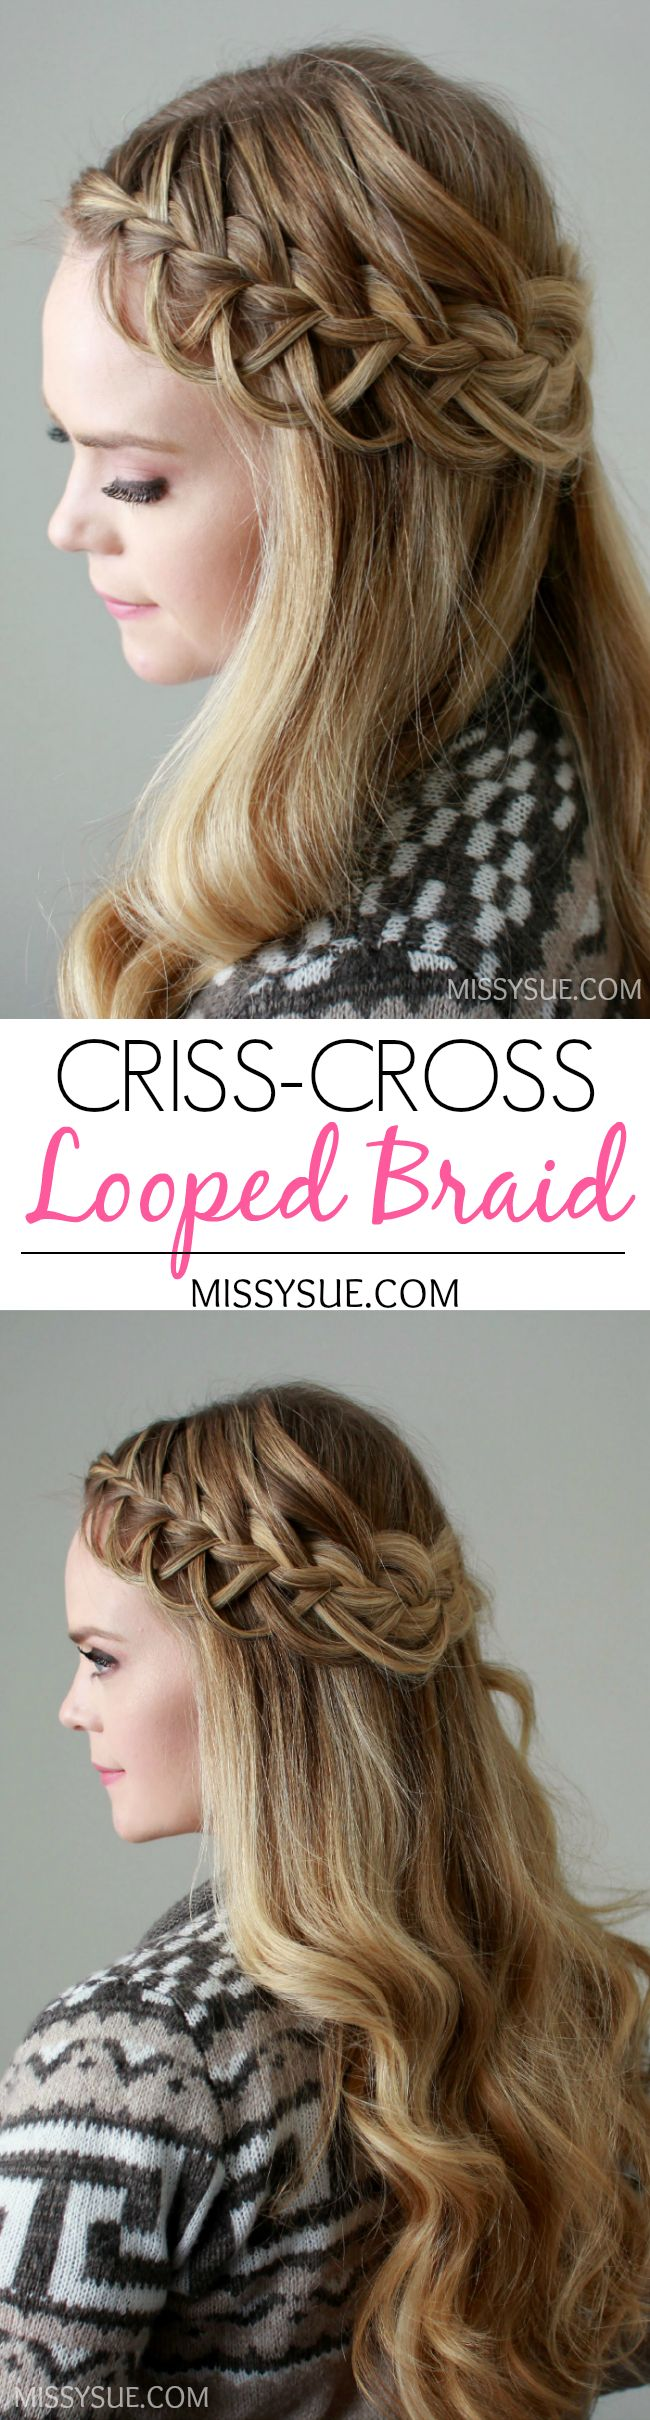 criss-cross-looped-braid-tutorial